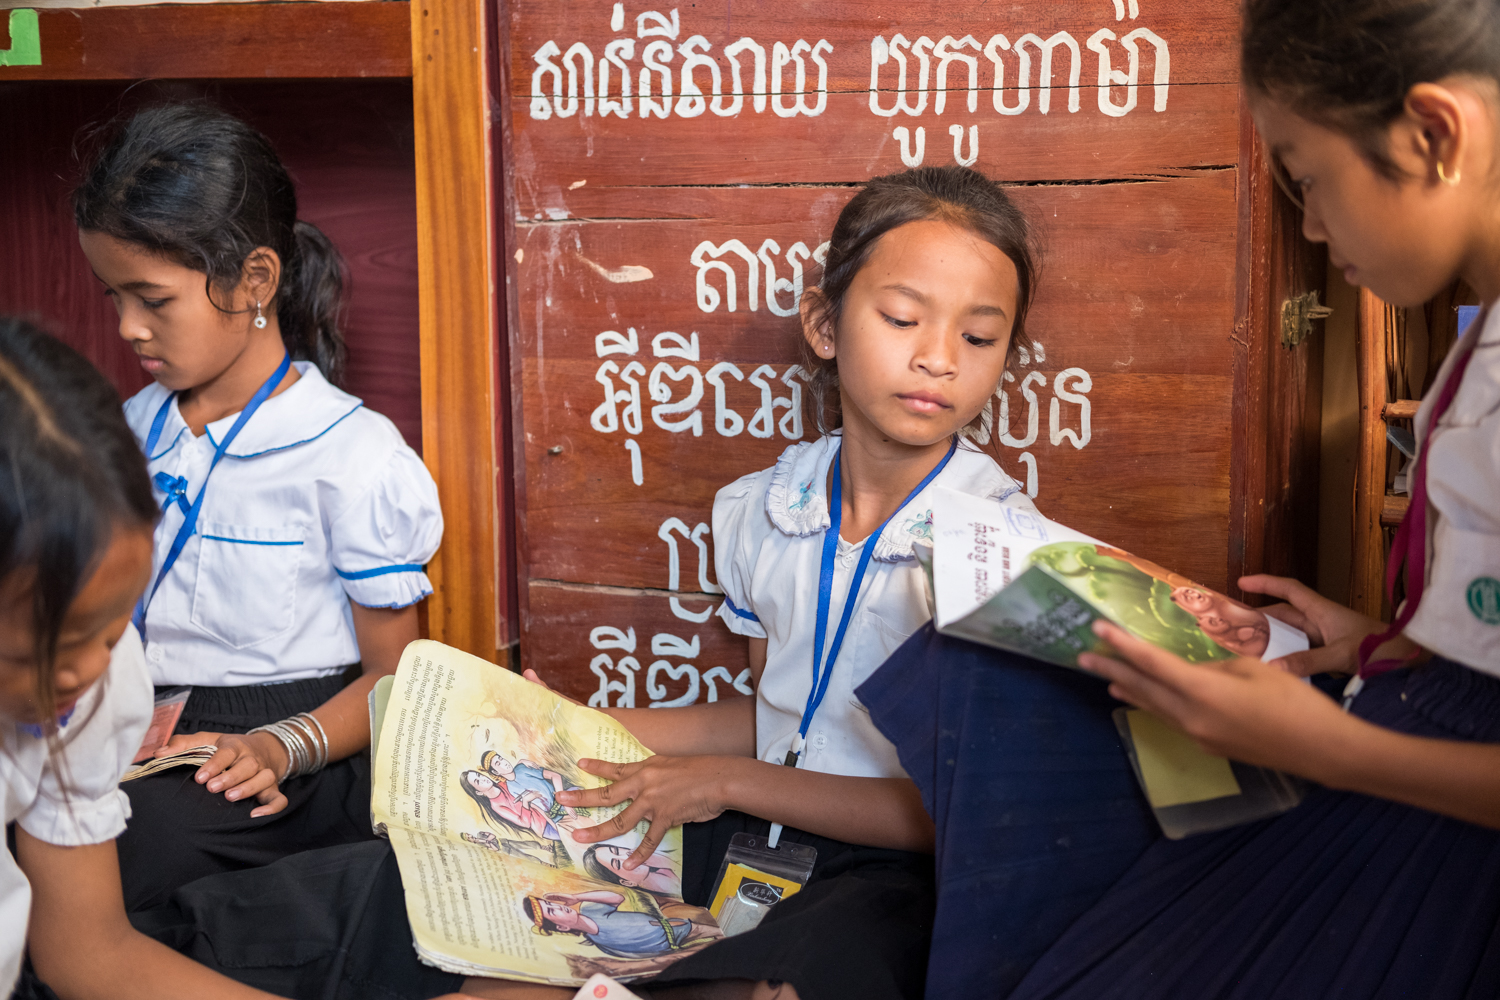 Several girls read books inside the library of a local grammar school in the village of Kampong Tralach, Cambodia.